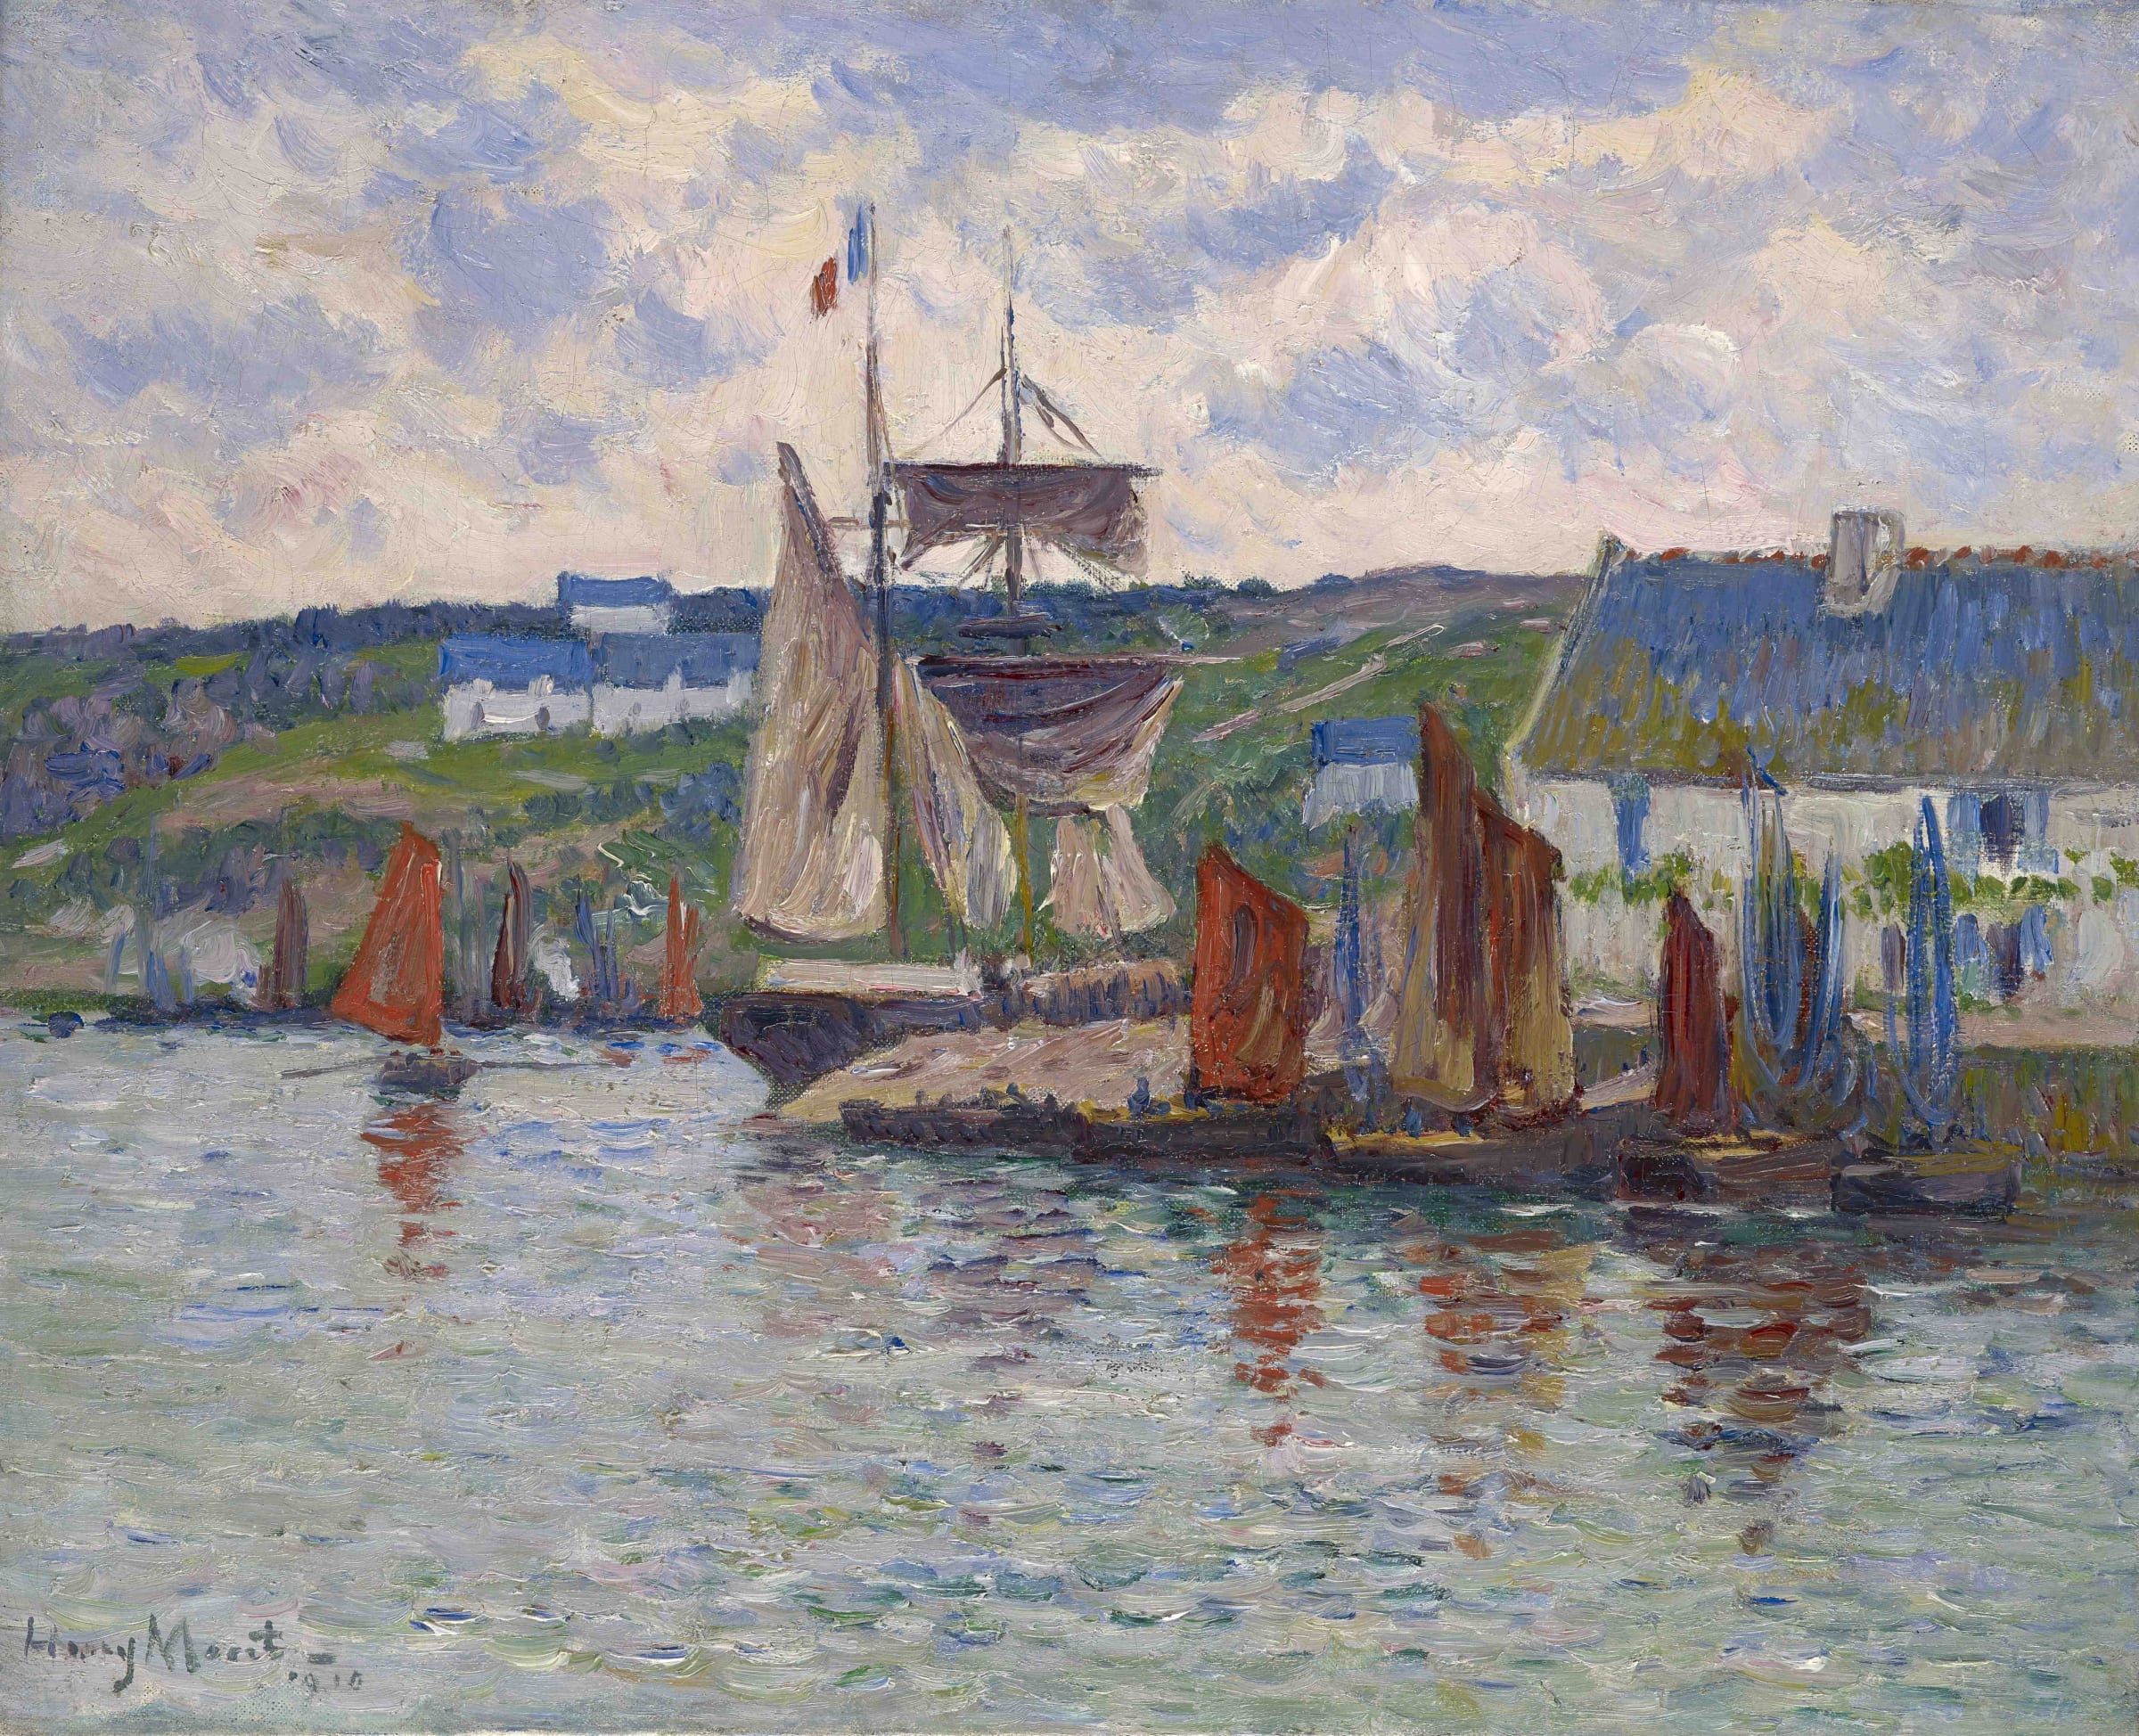 <span class=&#34;link fancybox-details-link&#34;><a href=&#34;/artists/69-henry-moret/works/9413-henry-moret-port-en-bretagne-1910/&#34;>View Detail Page</a></span><div class=&#34;artist&#34;><span class=&#34;artist&#34;><strong>Henry Moret</strong></span></div>